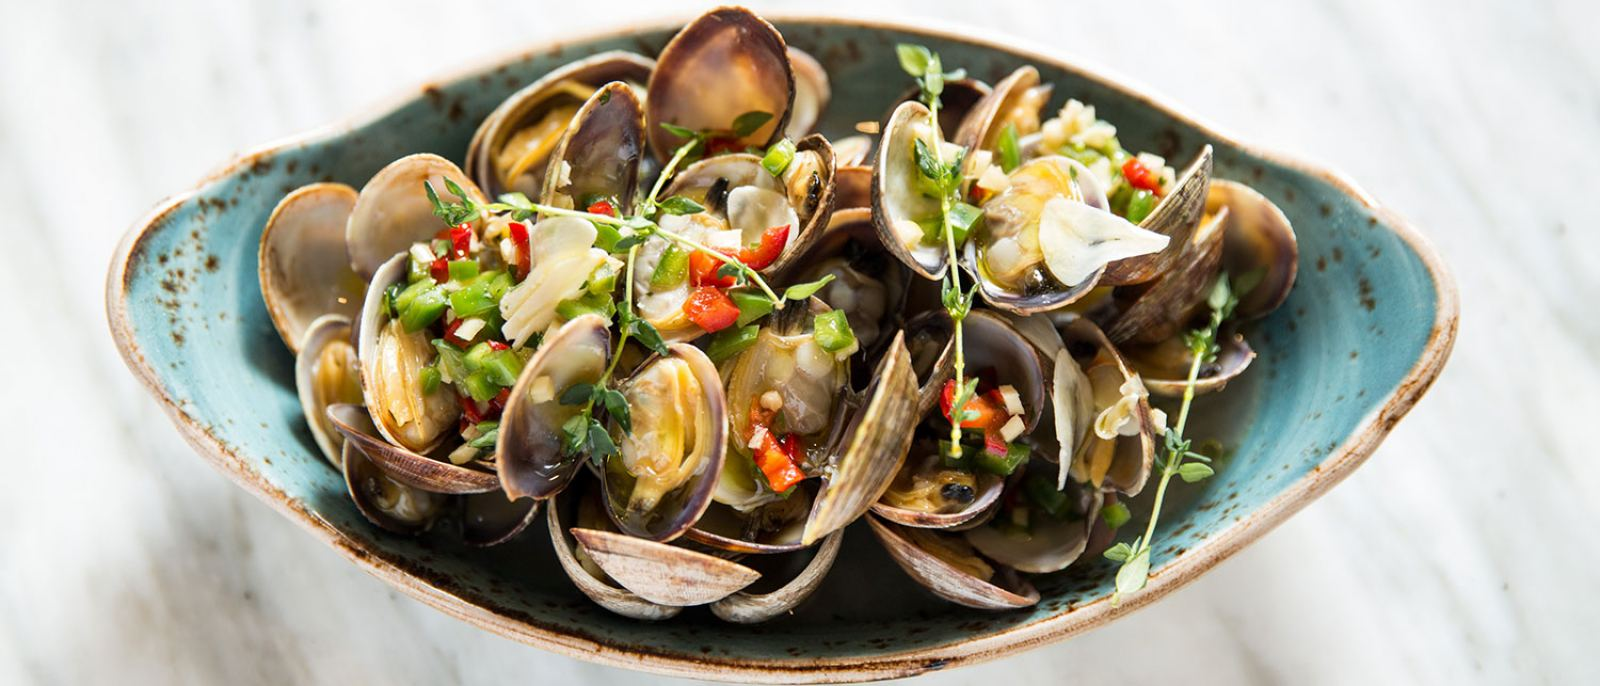 FIG Santa Monica Wood Smoked Manilla Clams